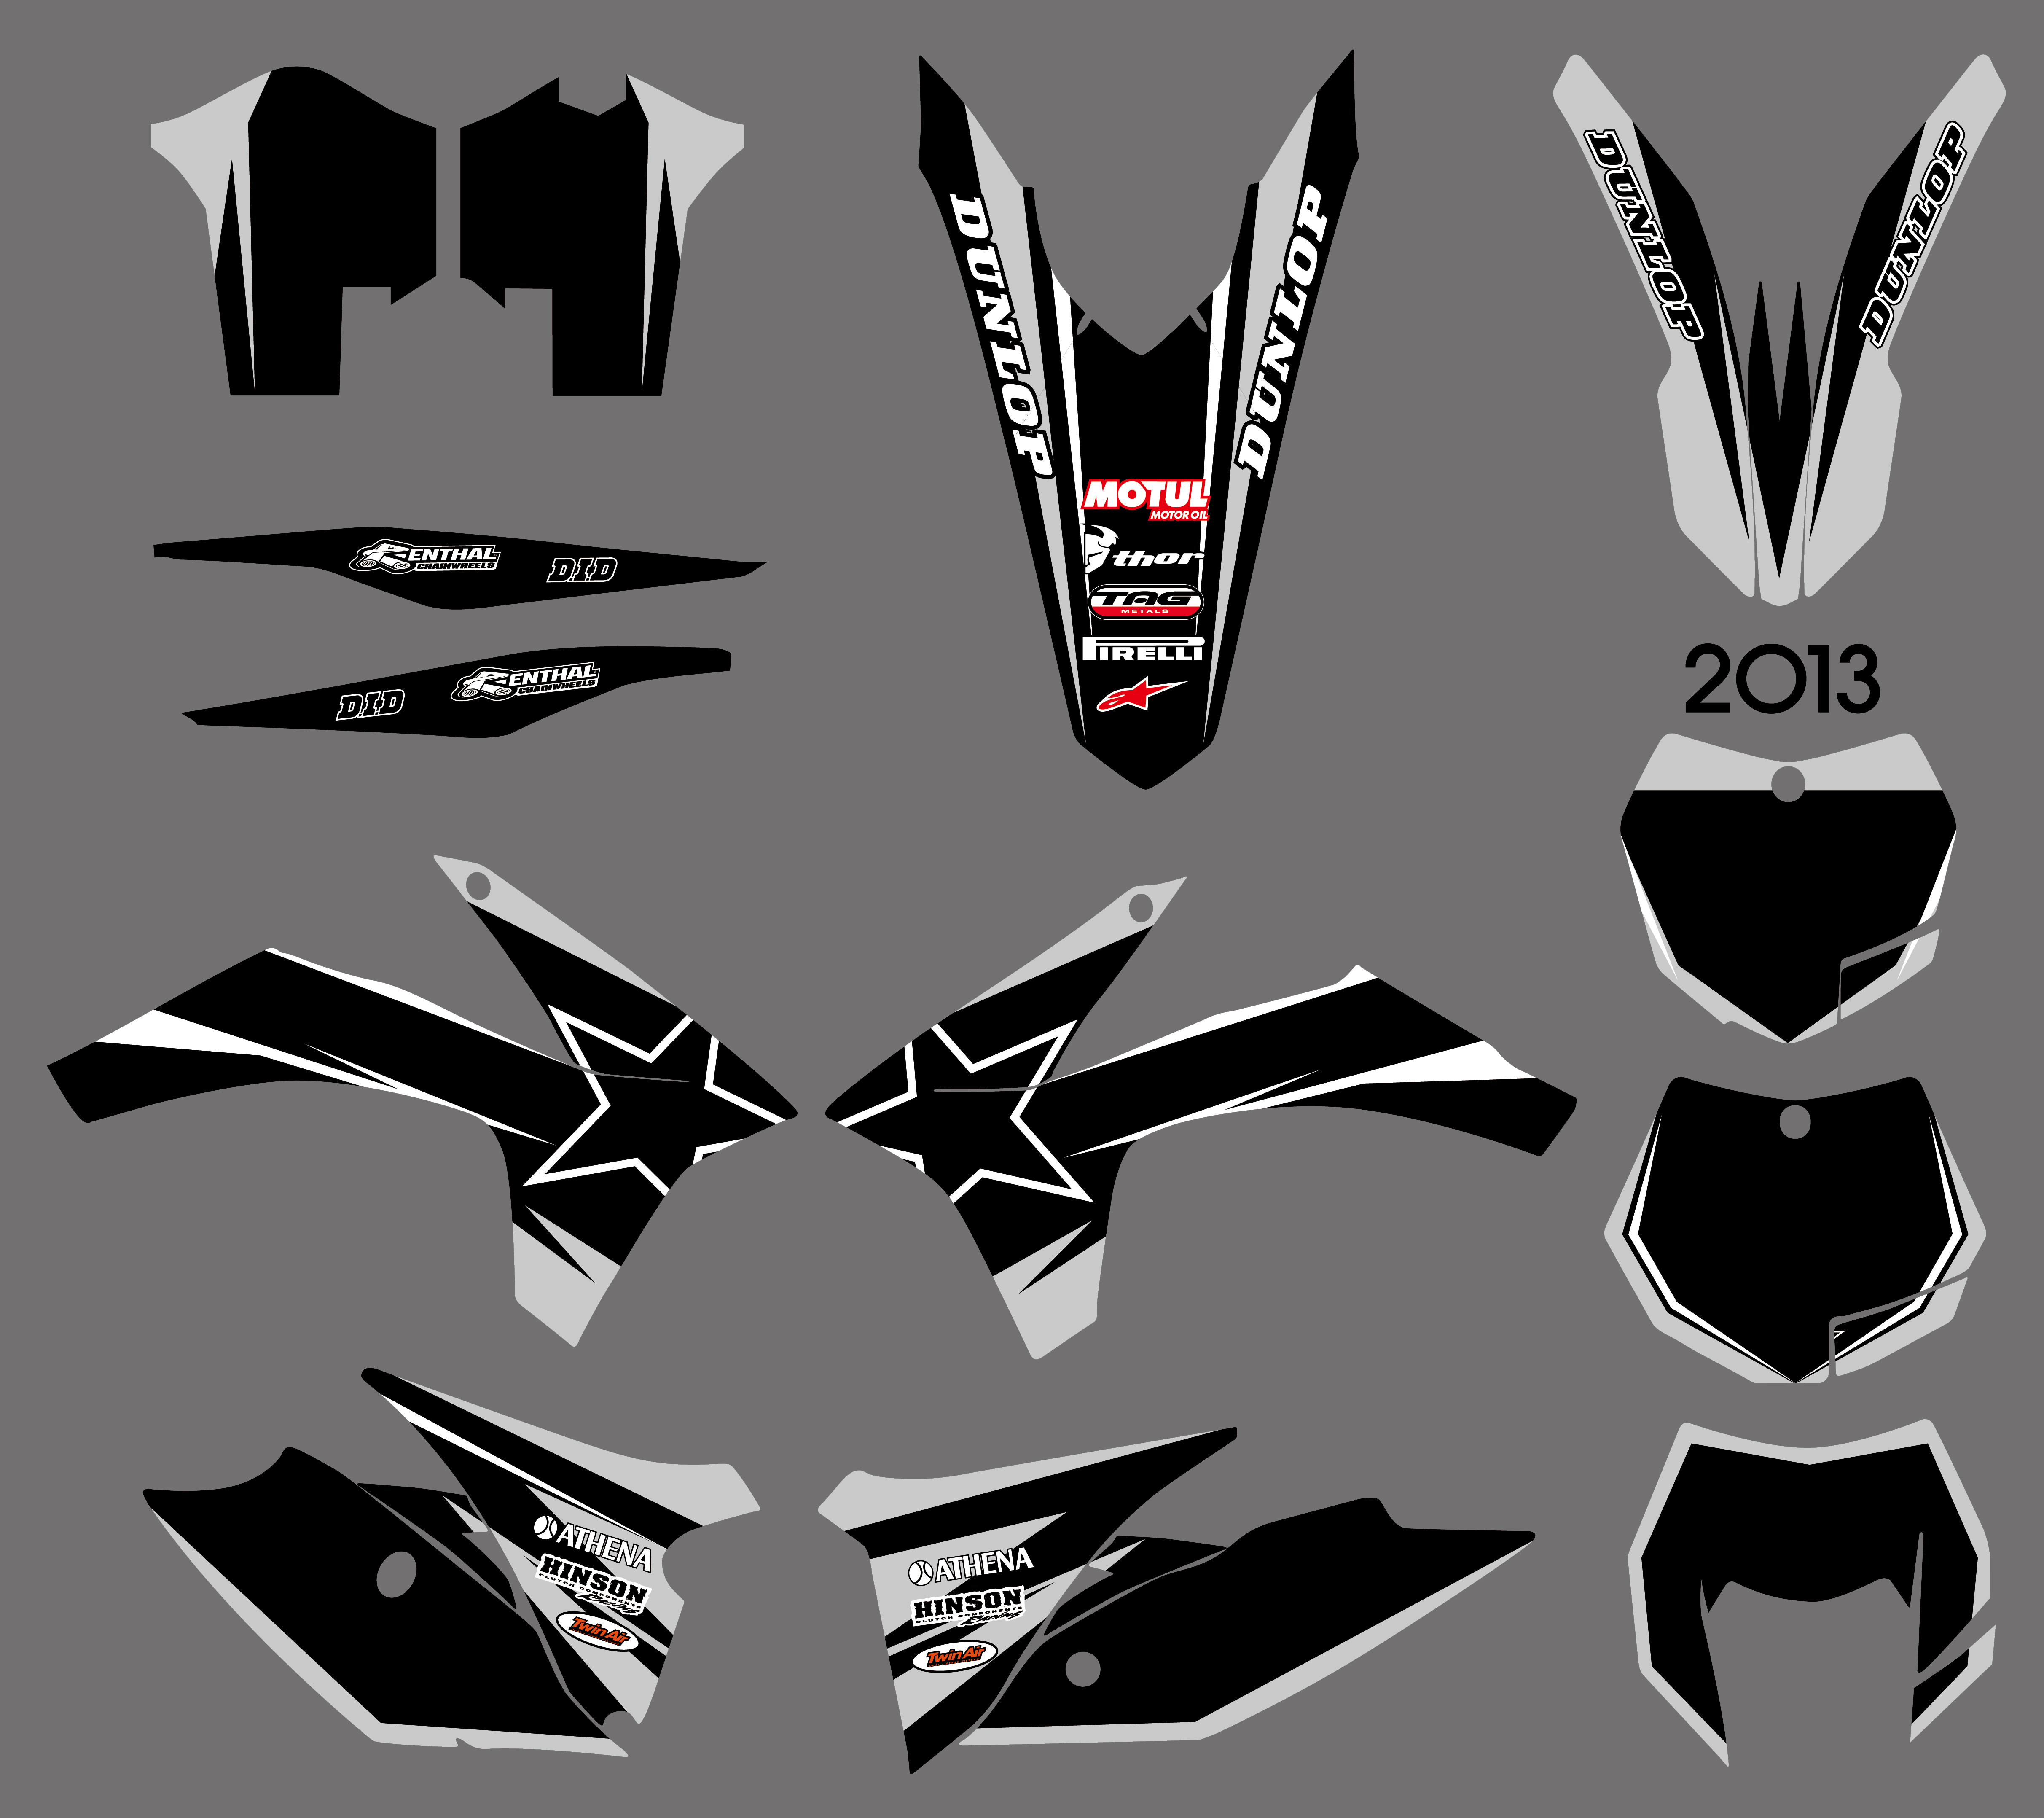 Motorcycle New Style Team Graphics Background Decal Sticker Kit For <font><b>KTM</b></font> <font><b>EXC</b></font> 125 200 250 300 350 450 <font><b>500</b></font> <font><b>2012</b></font> 2013 XC 2011 image